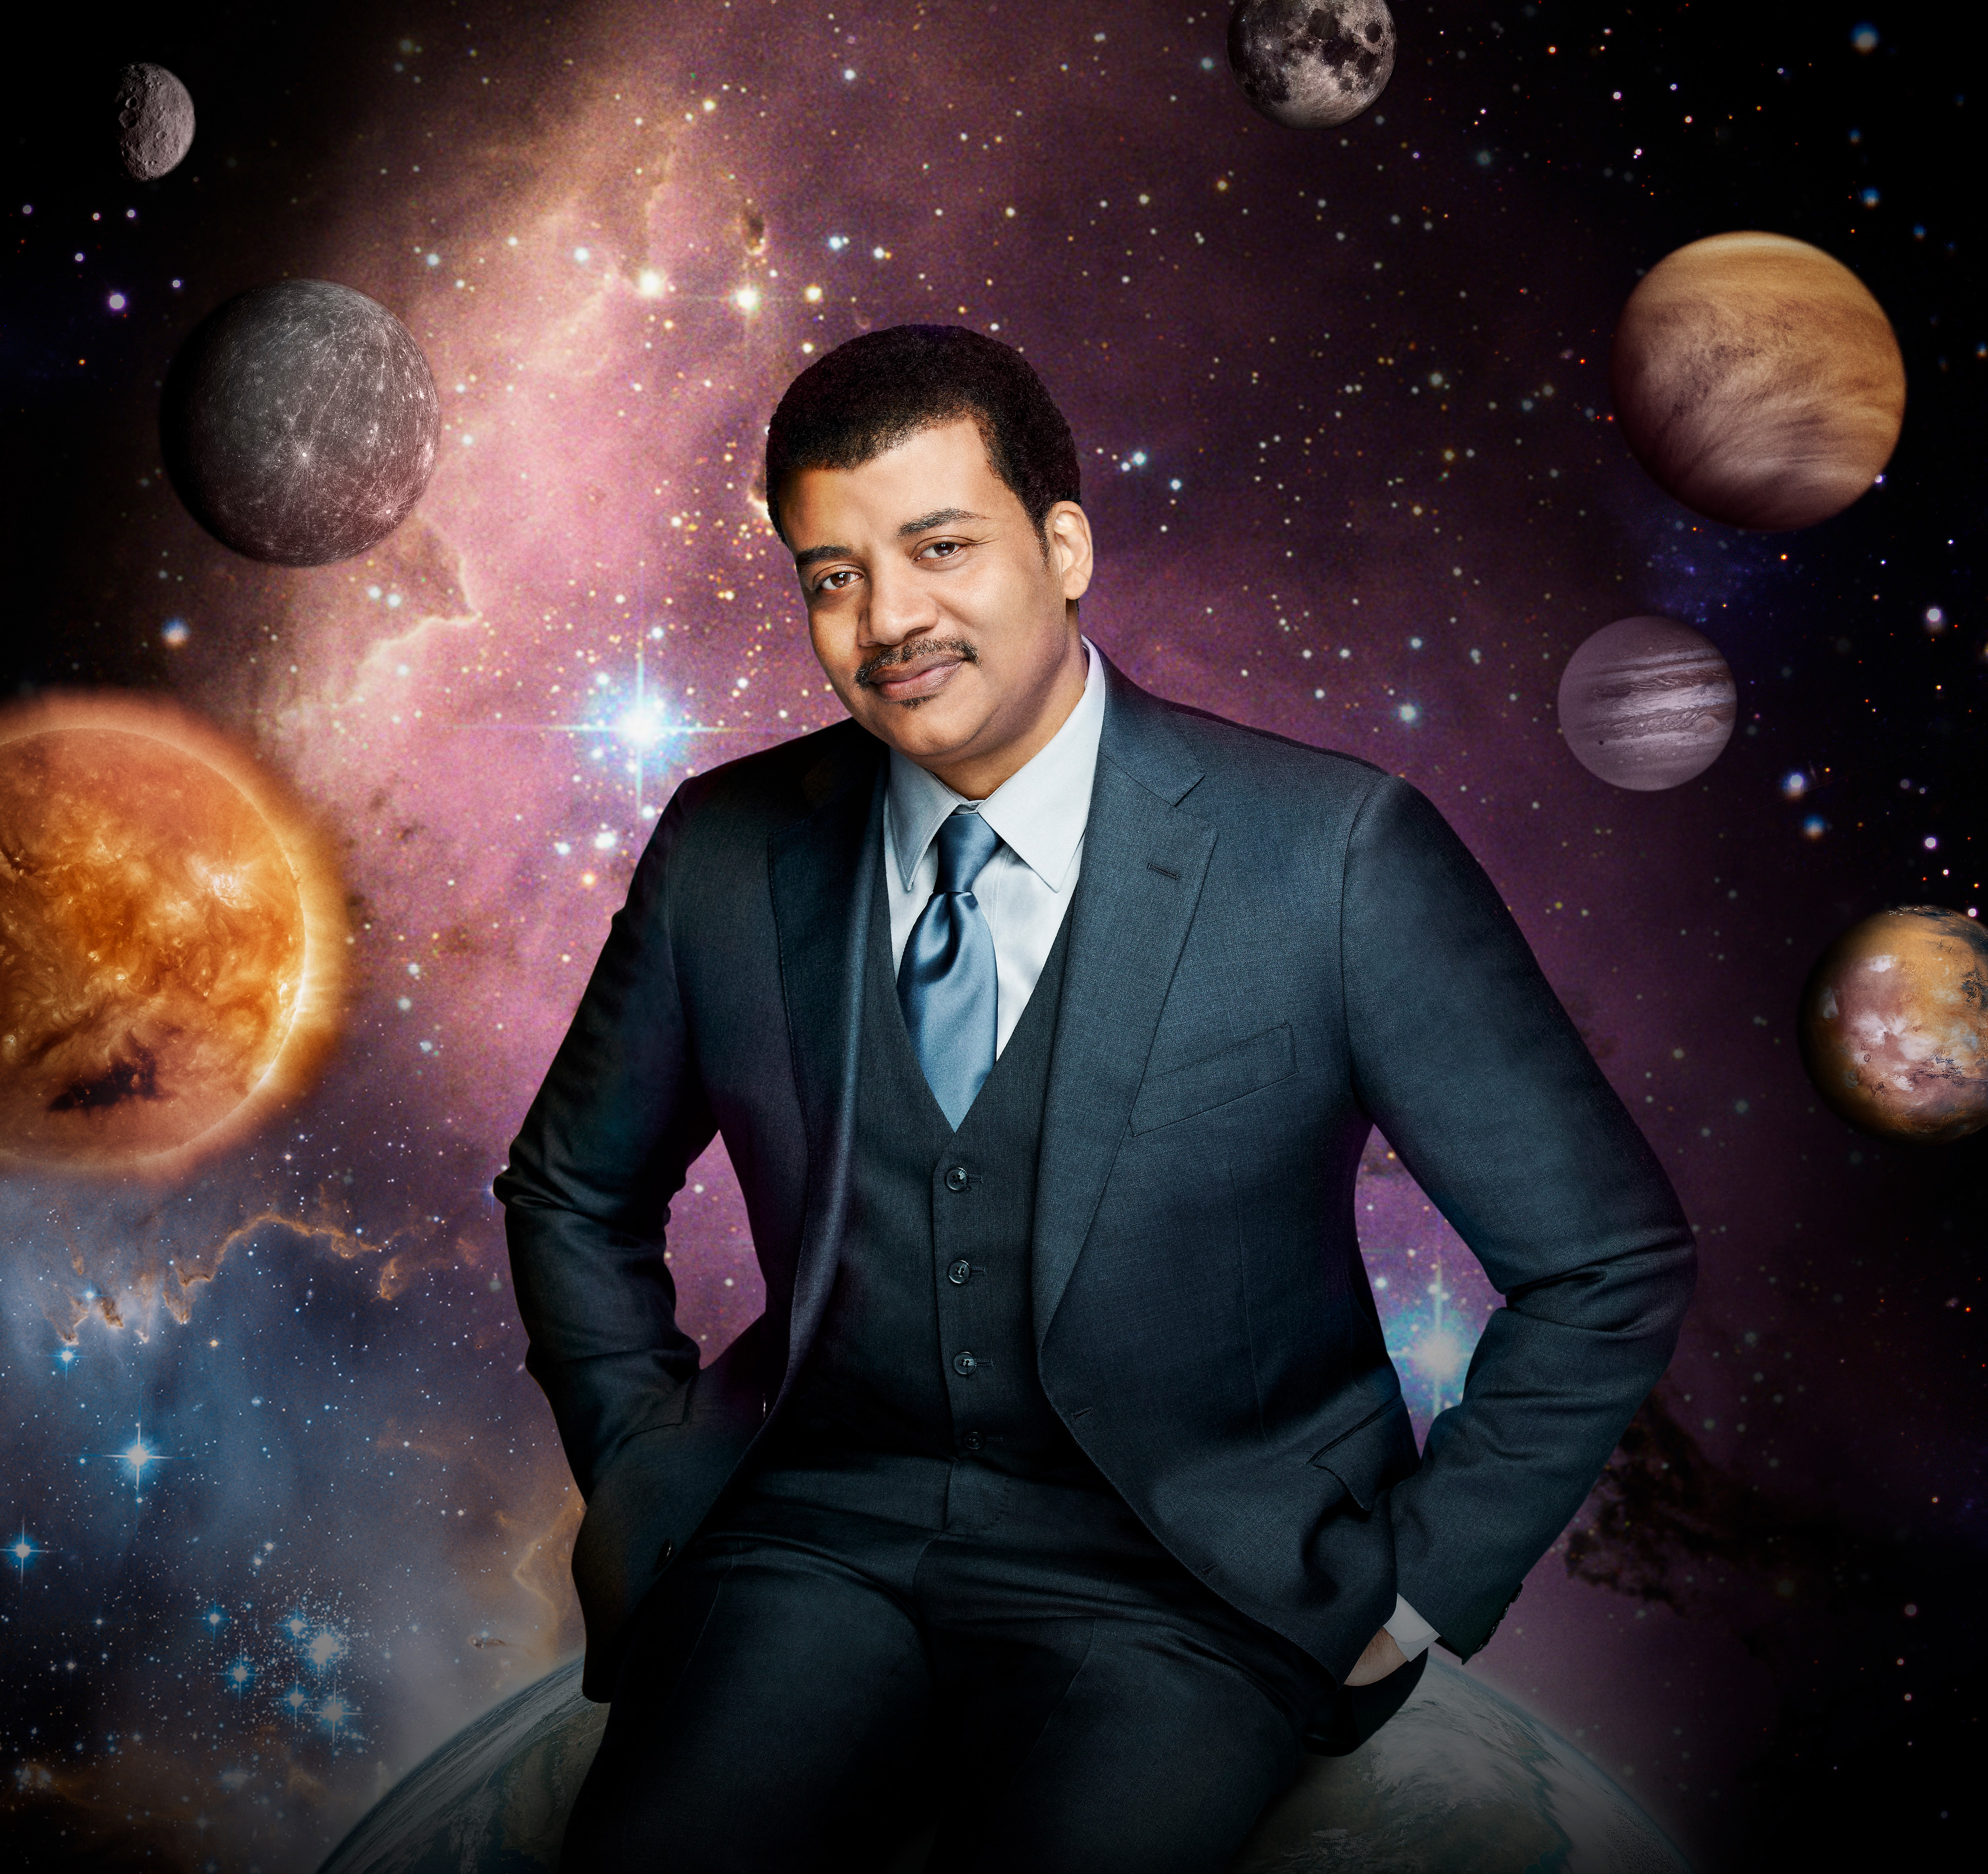 Parody Neil deGrasse Tyson Twitter account had the PERFECT response to a sexist science joke